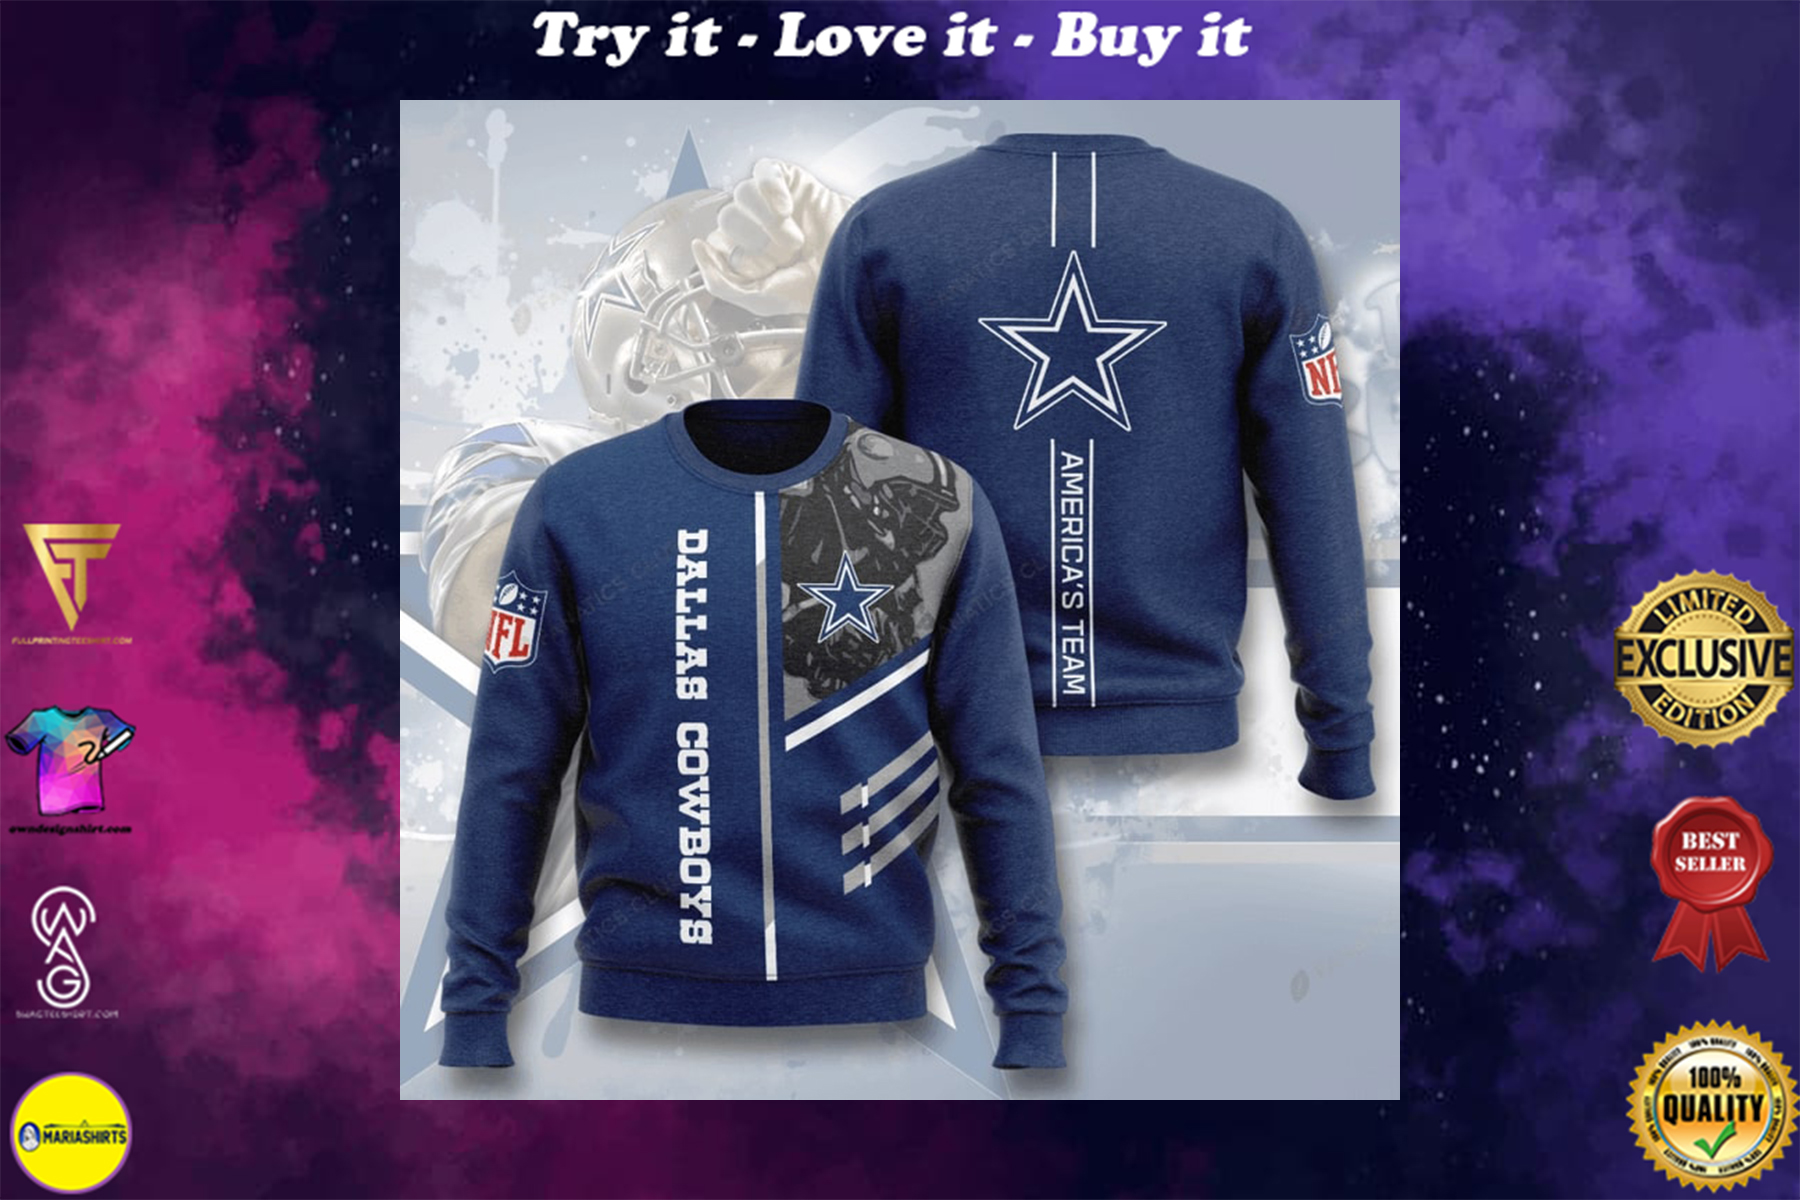 [special edition] dallas cowboys america's team full printing ugly sweater - maria